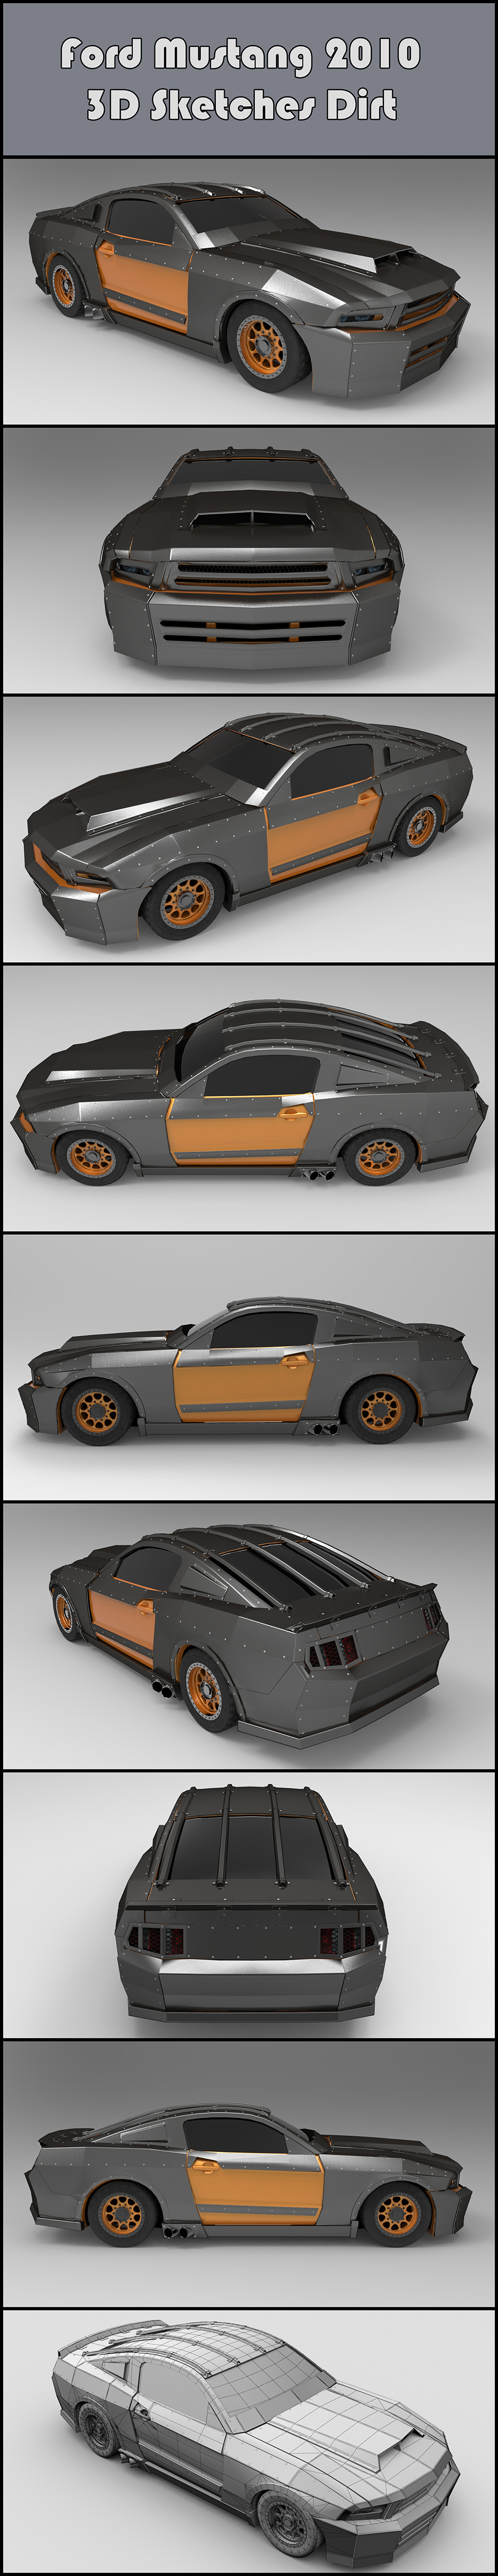 2011-11_The Crew_F.Beudin_Mustang-2010-Dirt_3D-SKETCHES